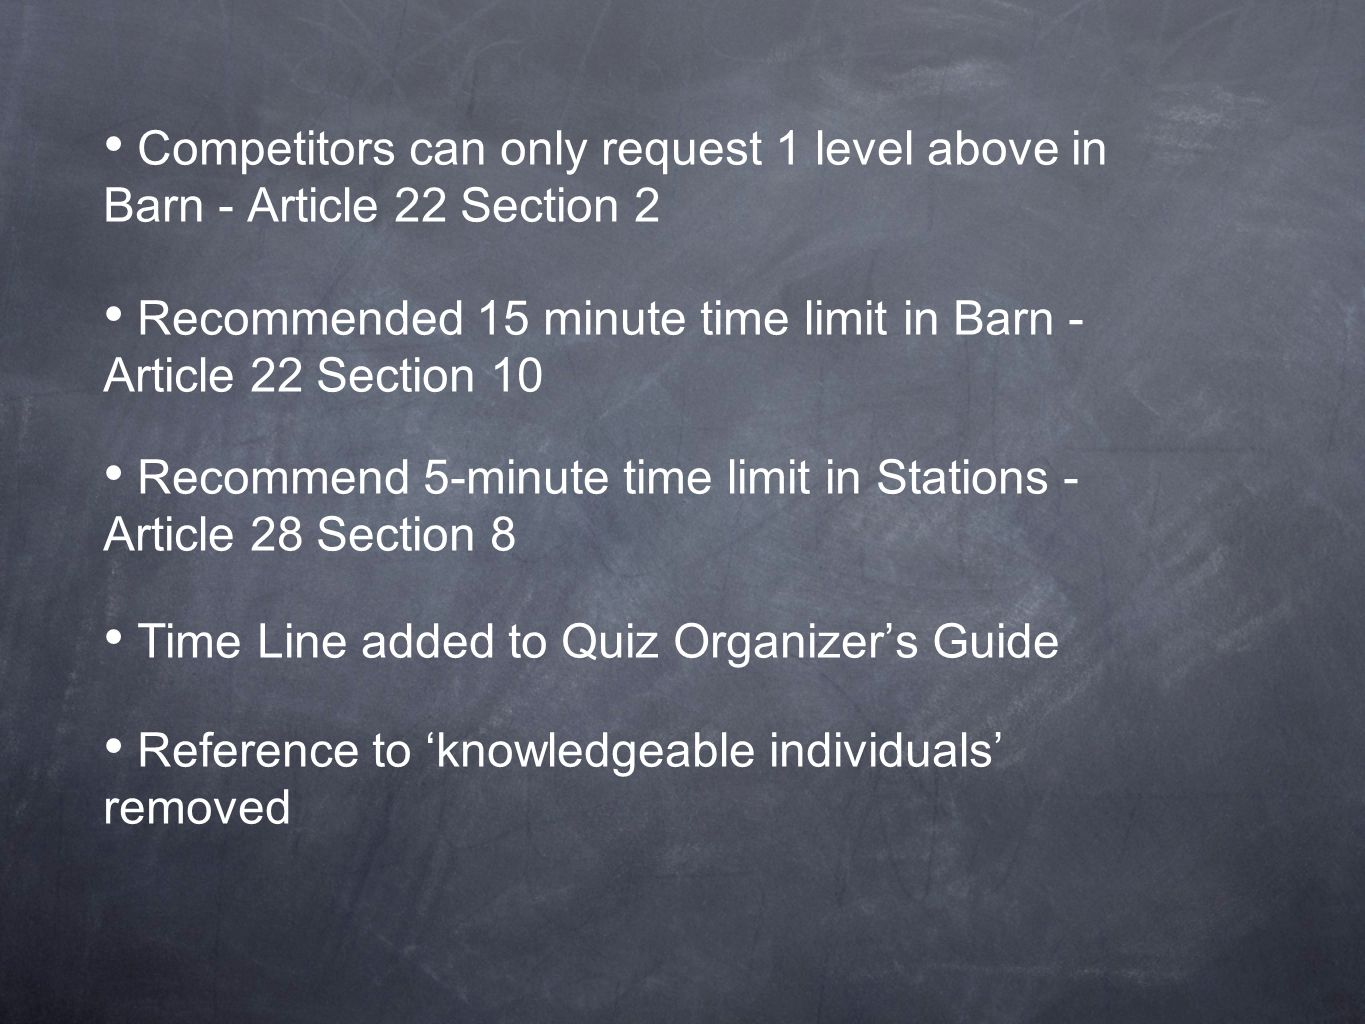 Competitors can only request 1 level above in Barn - Article 22 Section 2 Recommended 15 minute time limit in Barn - Article 22 Section 10 Recommend 5-minute time limit in Stations - Article 28 Section 8 Time Line added to Quiz Organizer's Guide Reference to 'knowledgeable individuals' removed